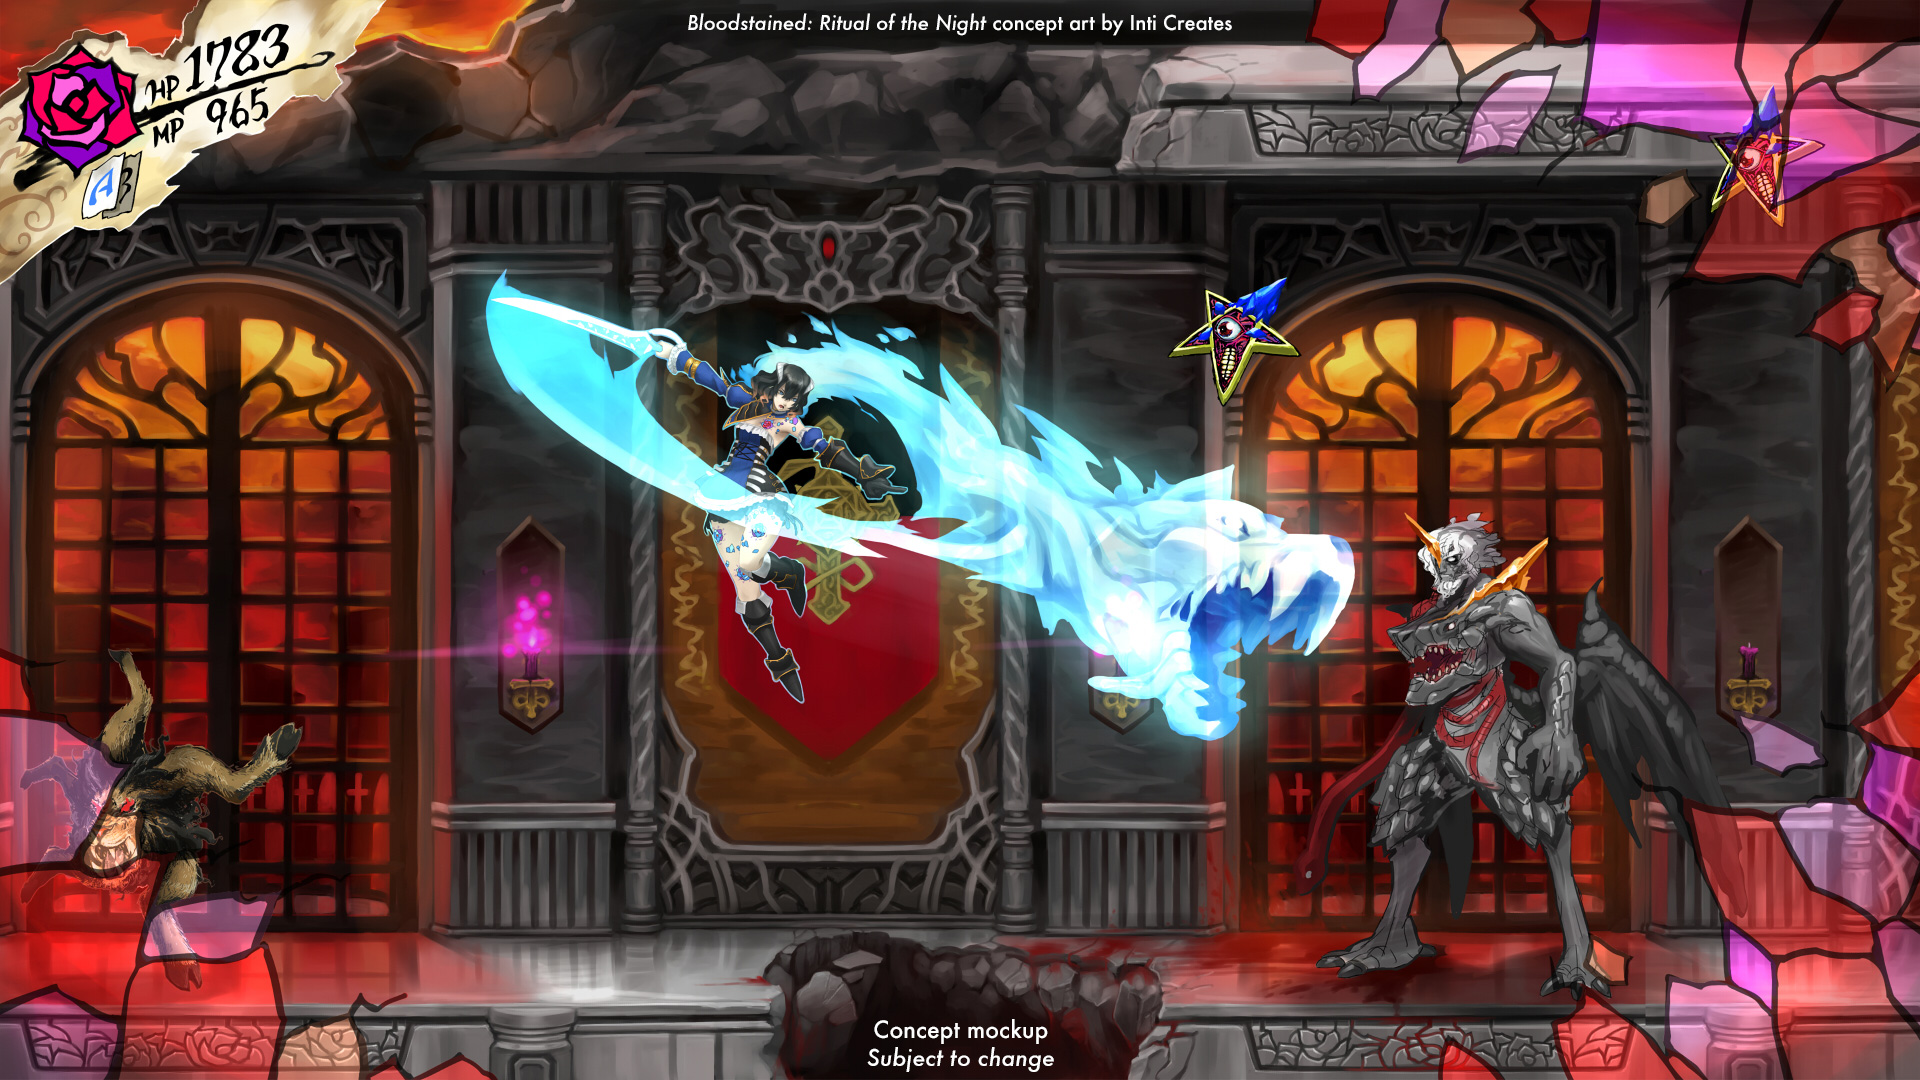 Bloodstained will come to Wii U as fundraiser sets sights on Vita